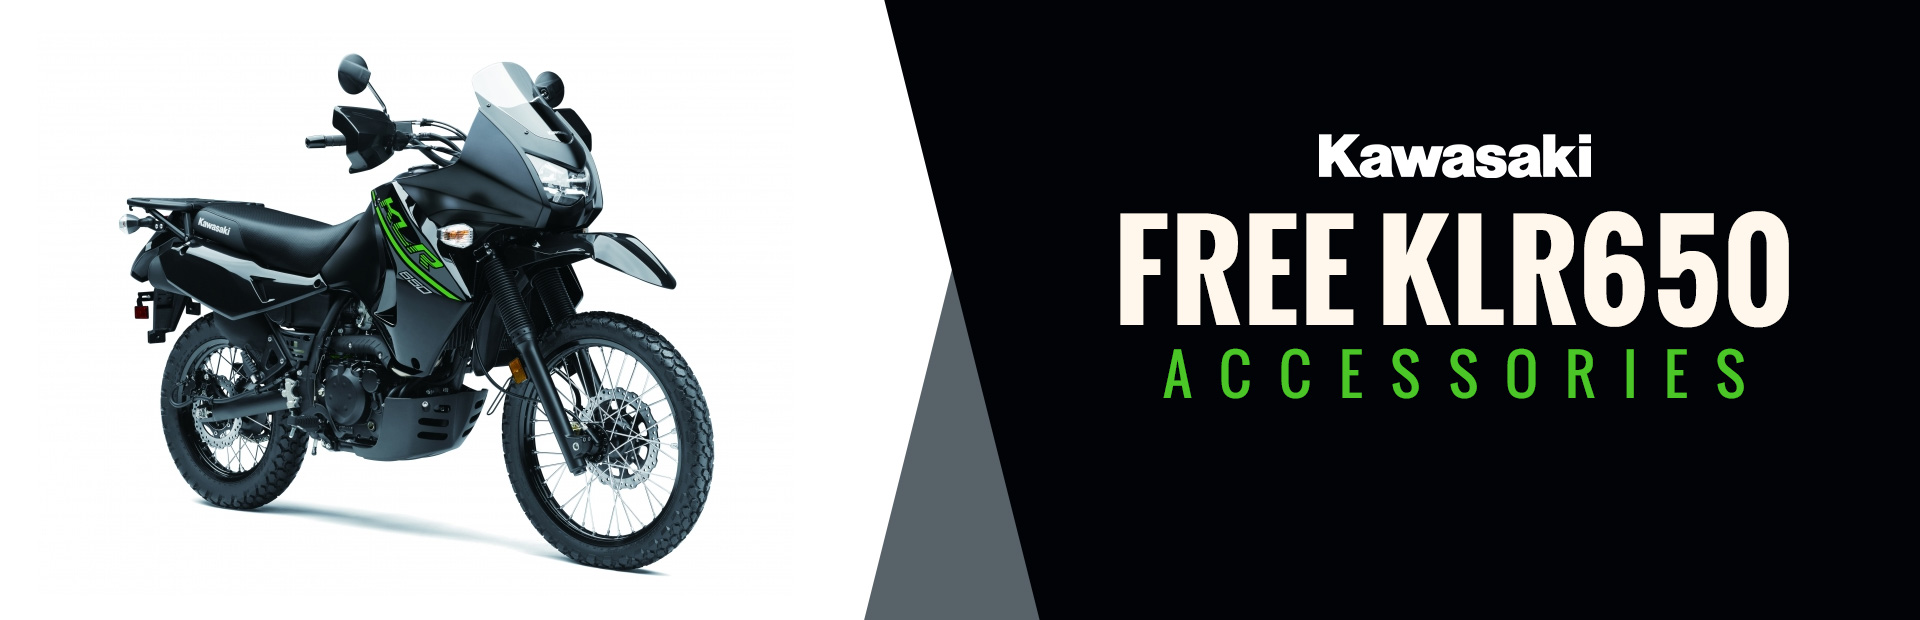 Kawasaki: Free KLR650 Accessories